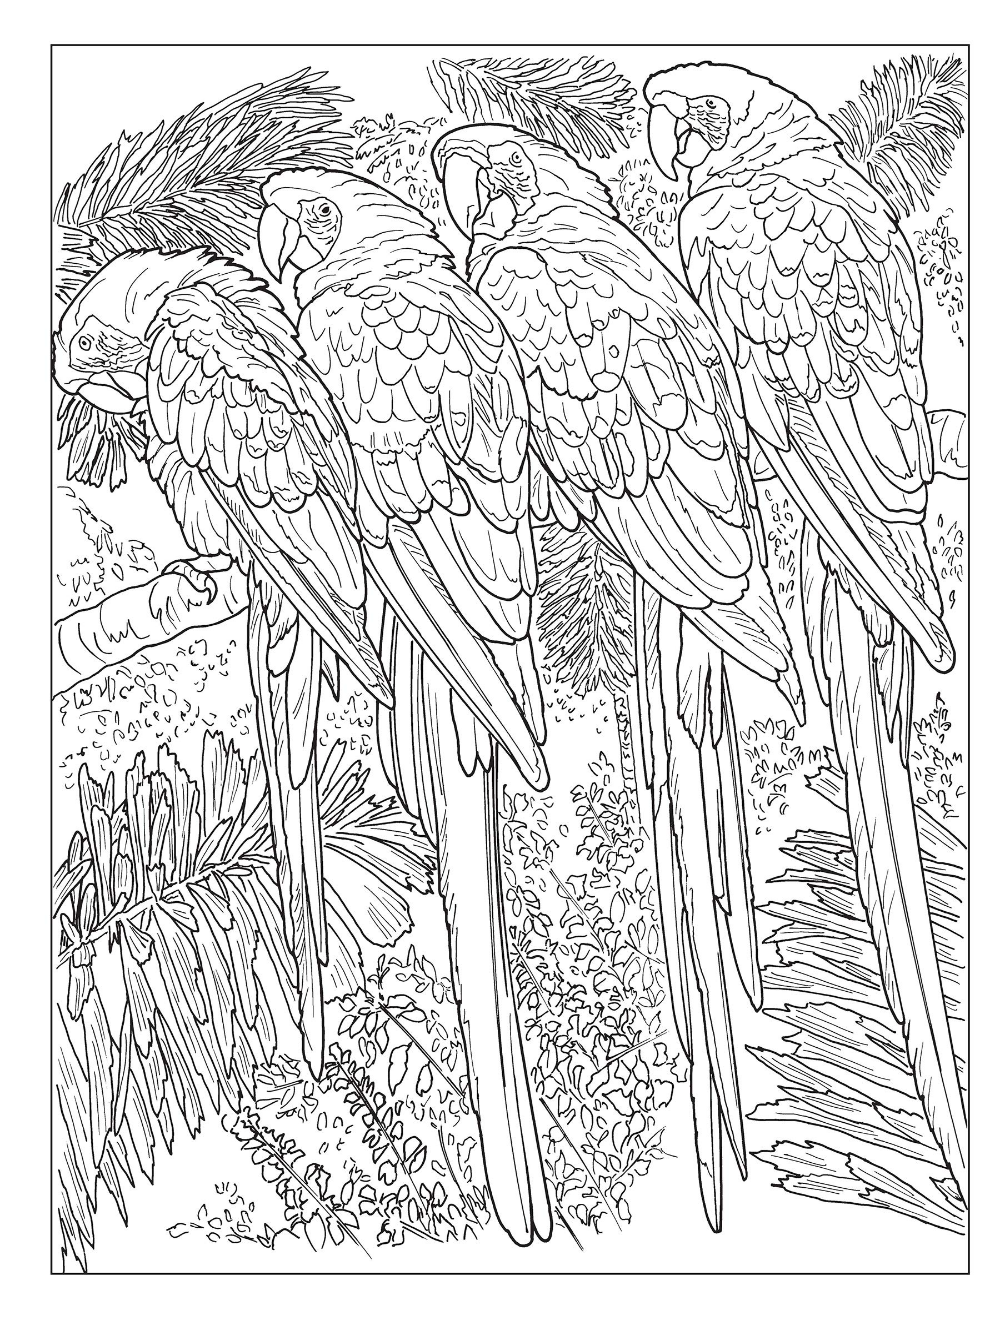 Amazon Com Creative Haven Beautiful Nature Designs Coloring Book Creative Haven Coloring Designs Coloring Books Creative Haven Coloring Books Coloring Books